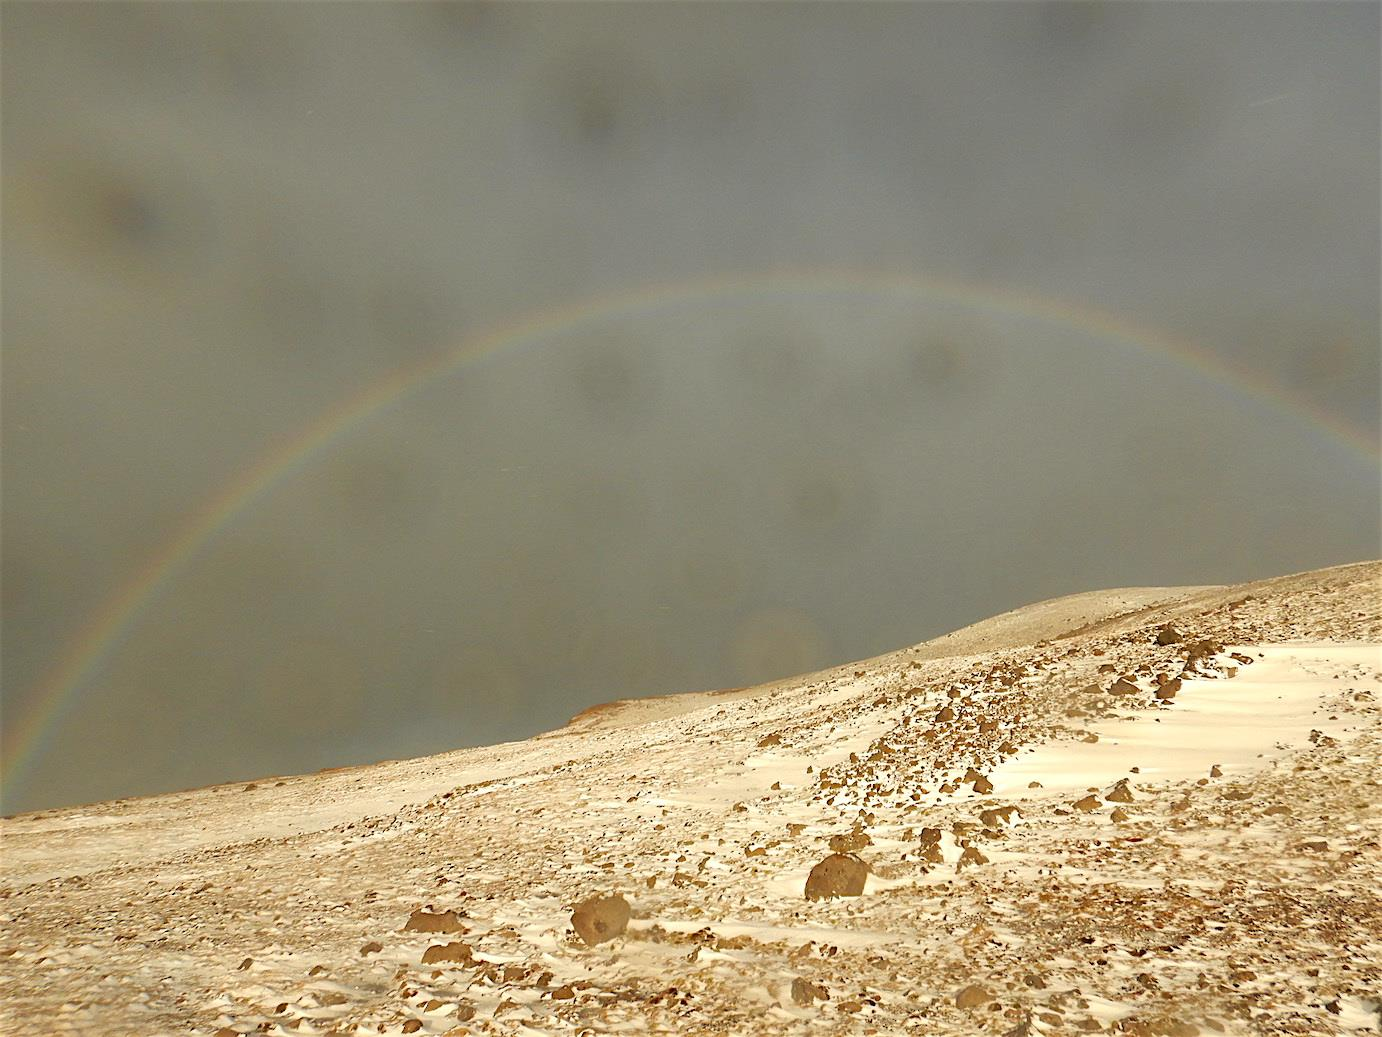 Full rainbow welcomes us this morning somewhere in the    East Siberian islands